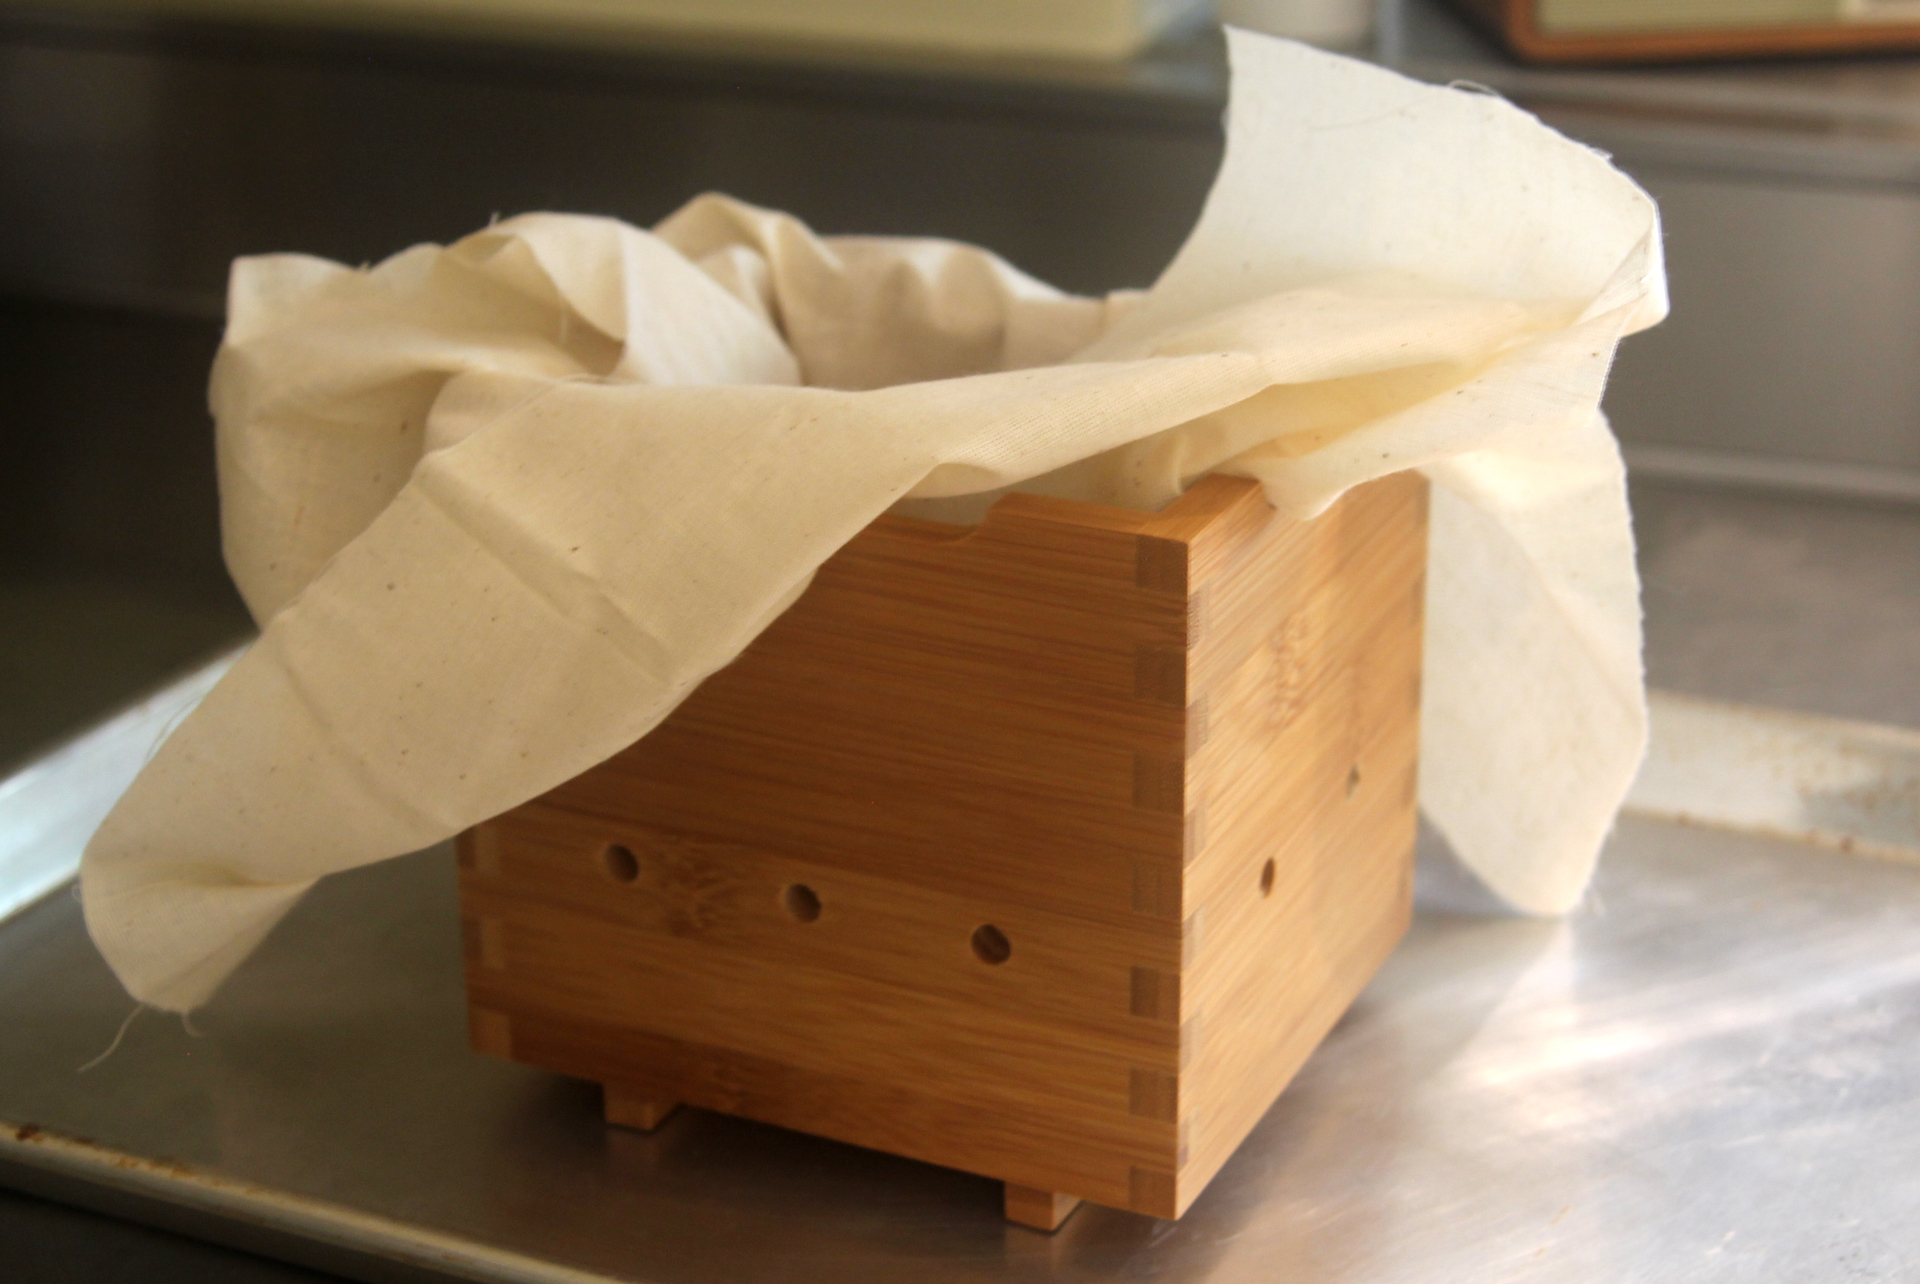 A wooden tofu mold with butter muslin.